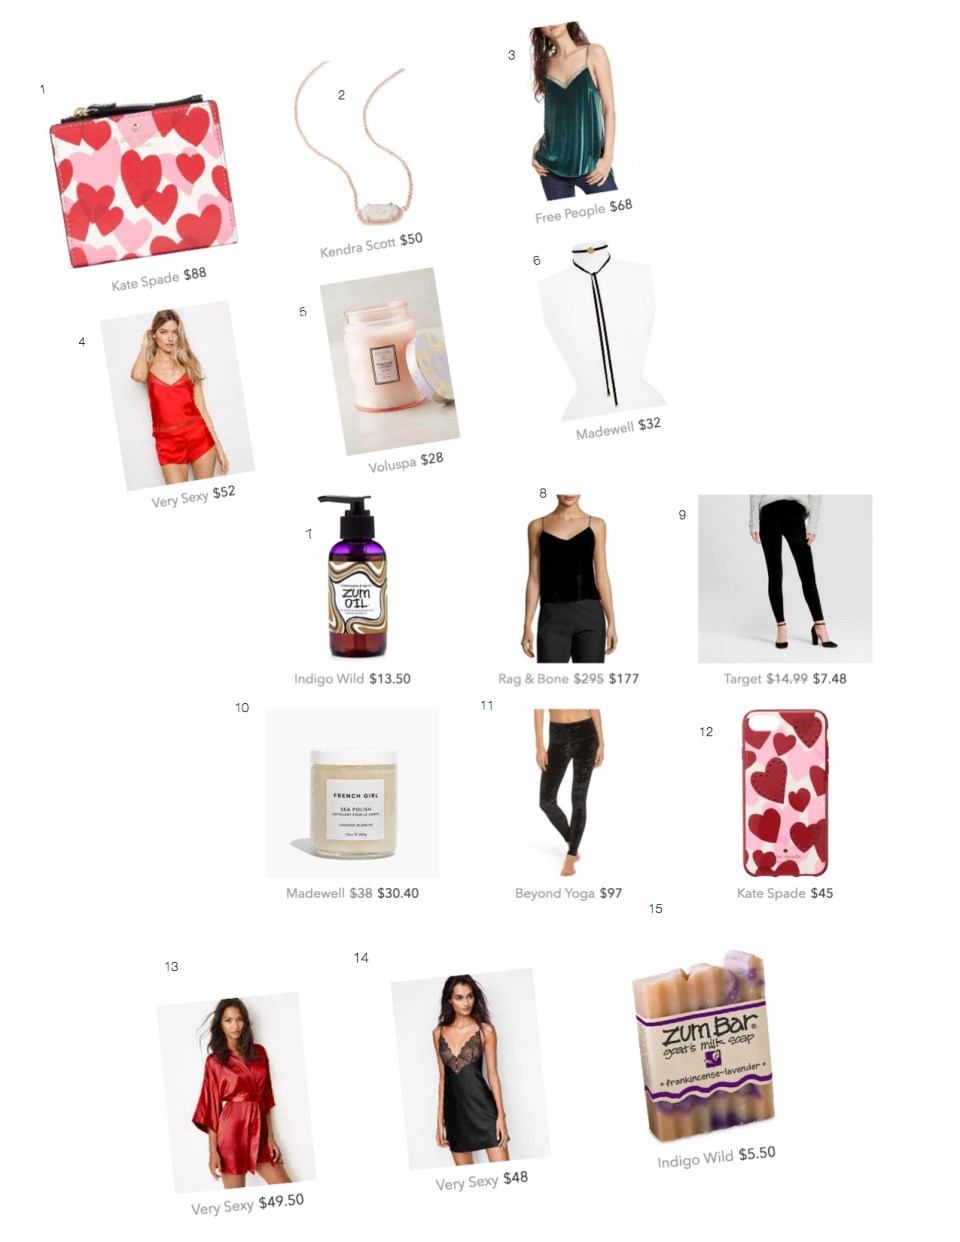 hers __ v day gift guide 2018 jpeg